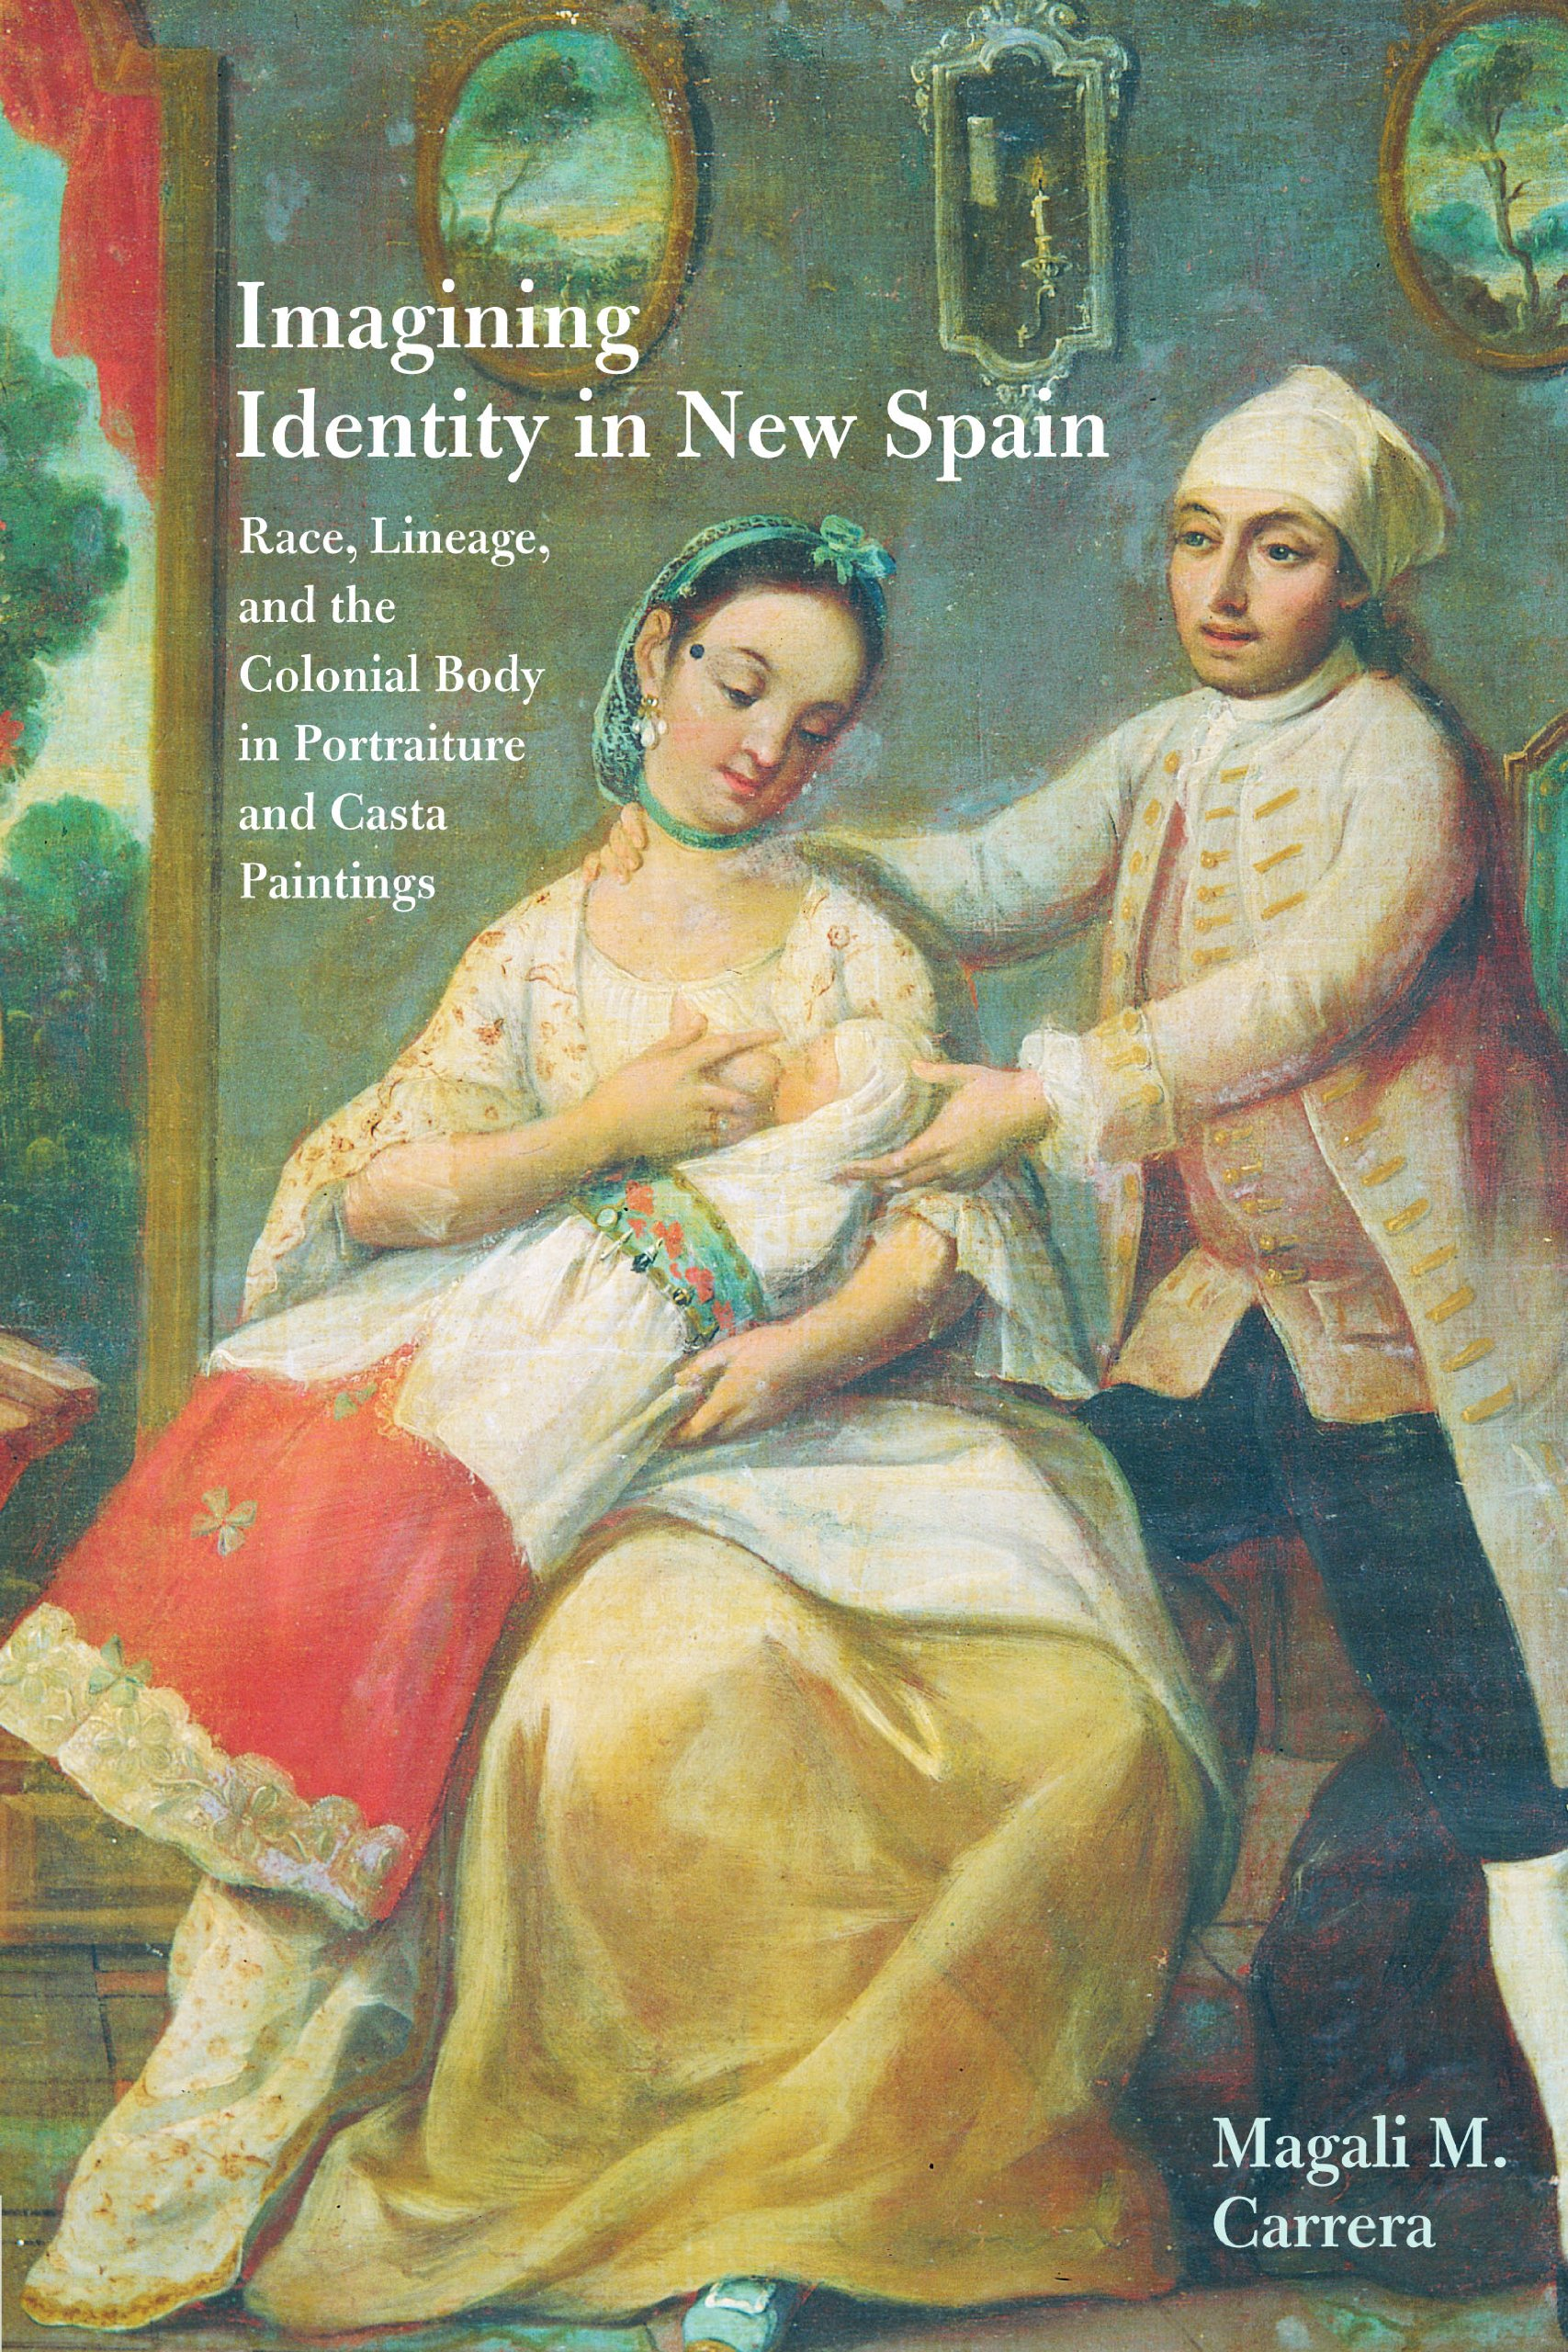 Read Online Imagining Identity in New Spain: Race, Lineage, and the Colonial Body in Portraiture and Casta Paintings (Joe R. and Teresa Lozano Long Series in Latin American and Latino Art and Culture) pdf epub